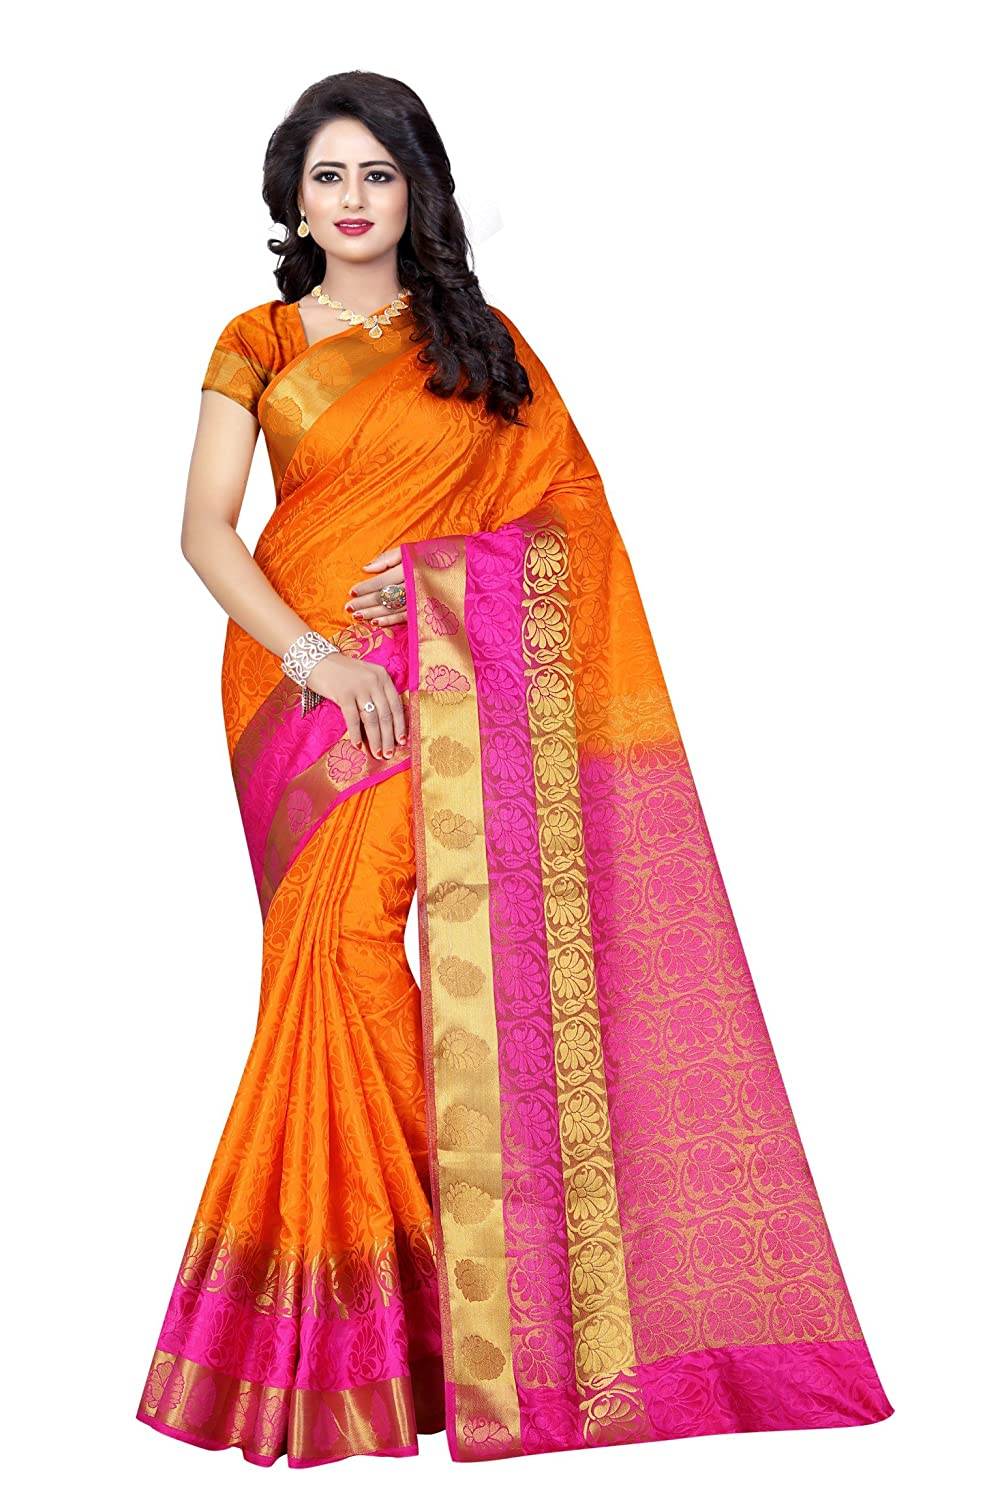 Great Sales On Sarees